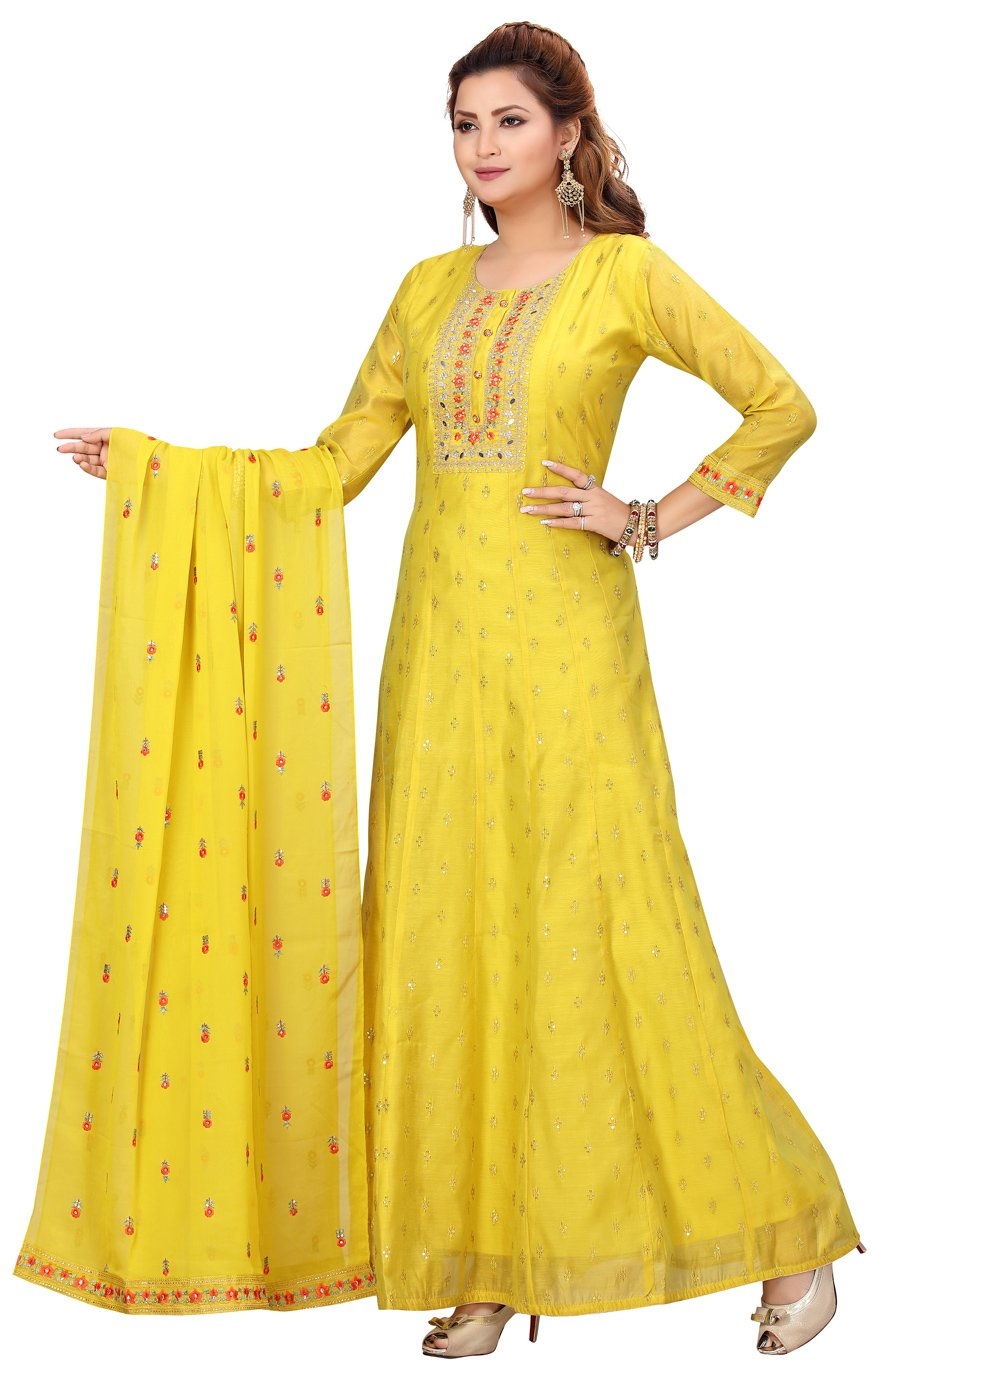 Chanderi Readymade Suit in Yellow